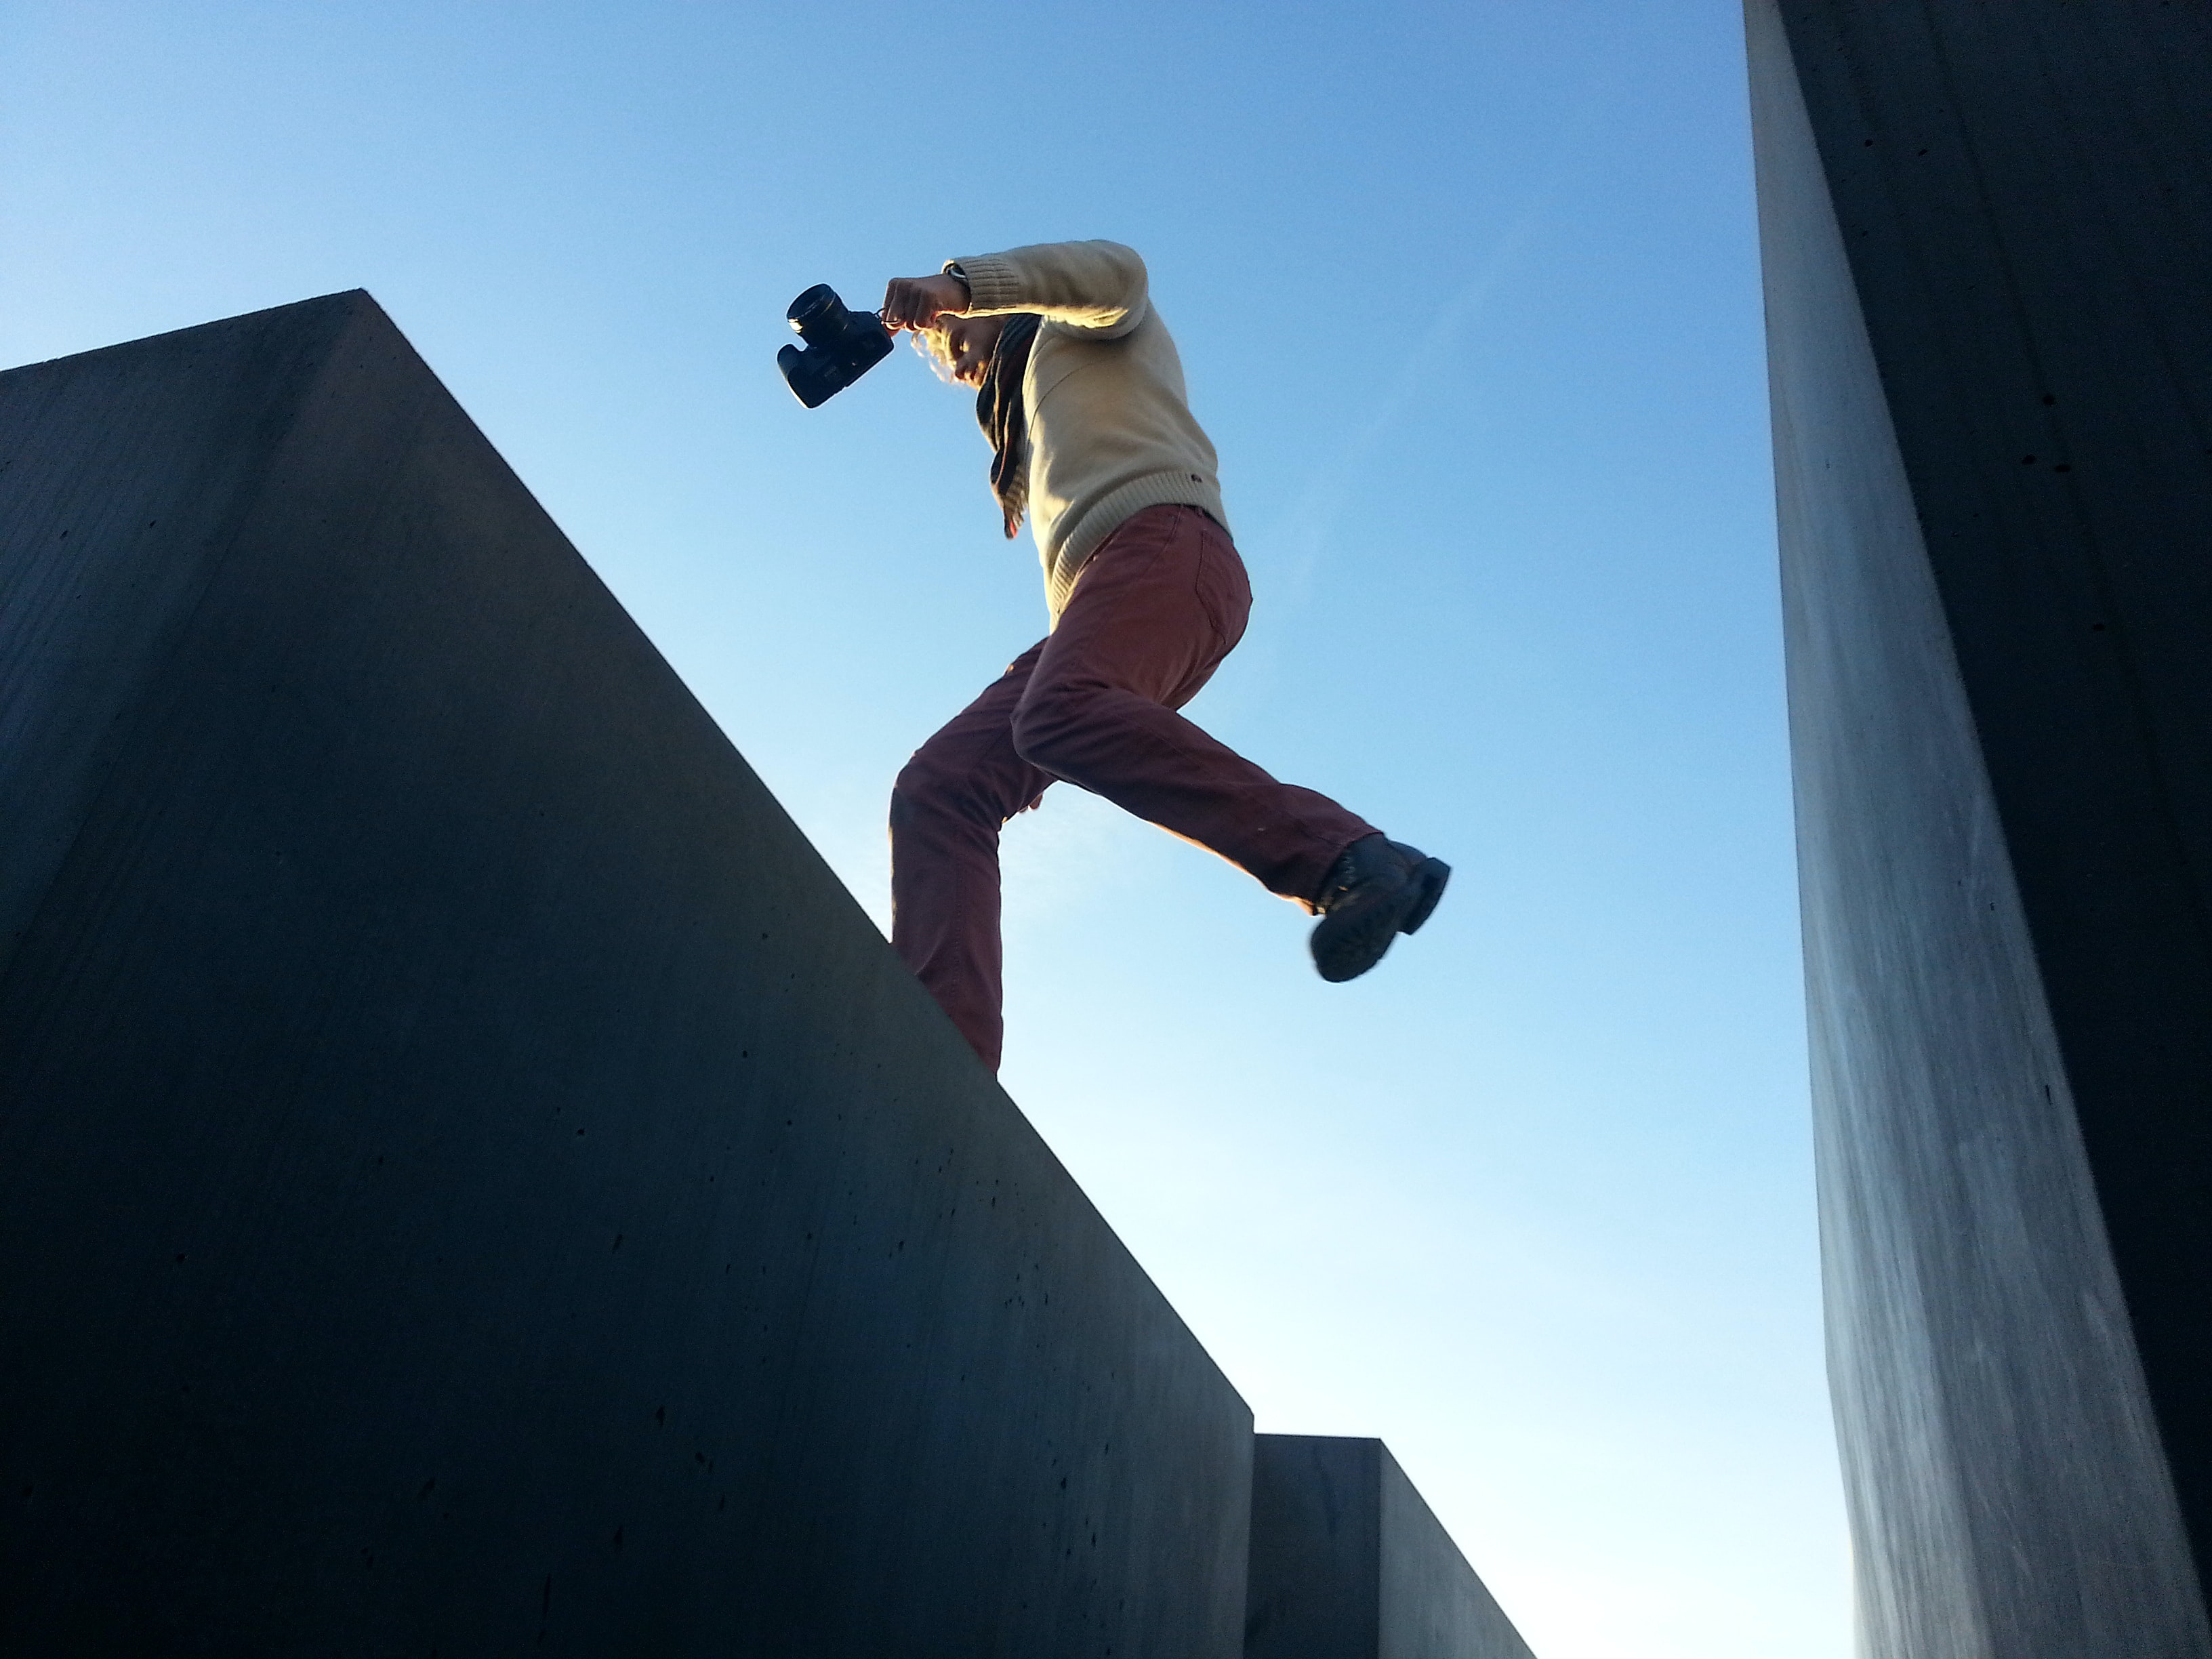 A man jumping between a gap on a roof